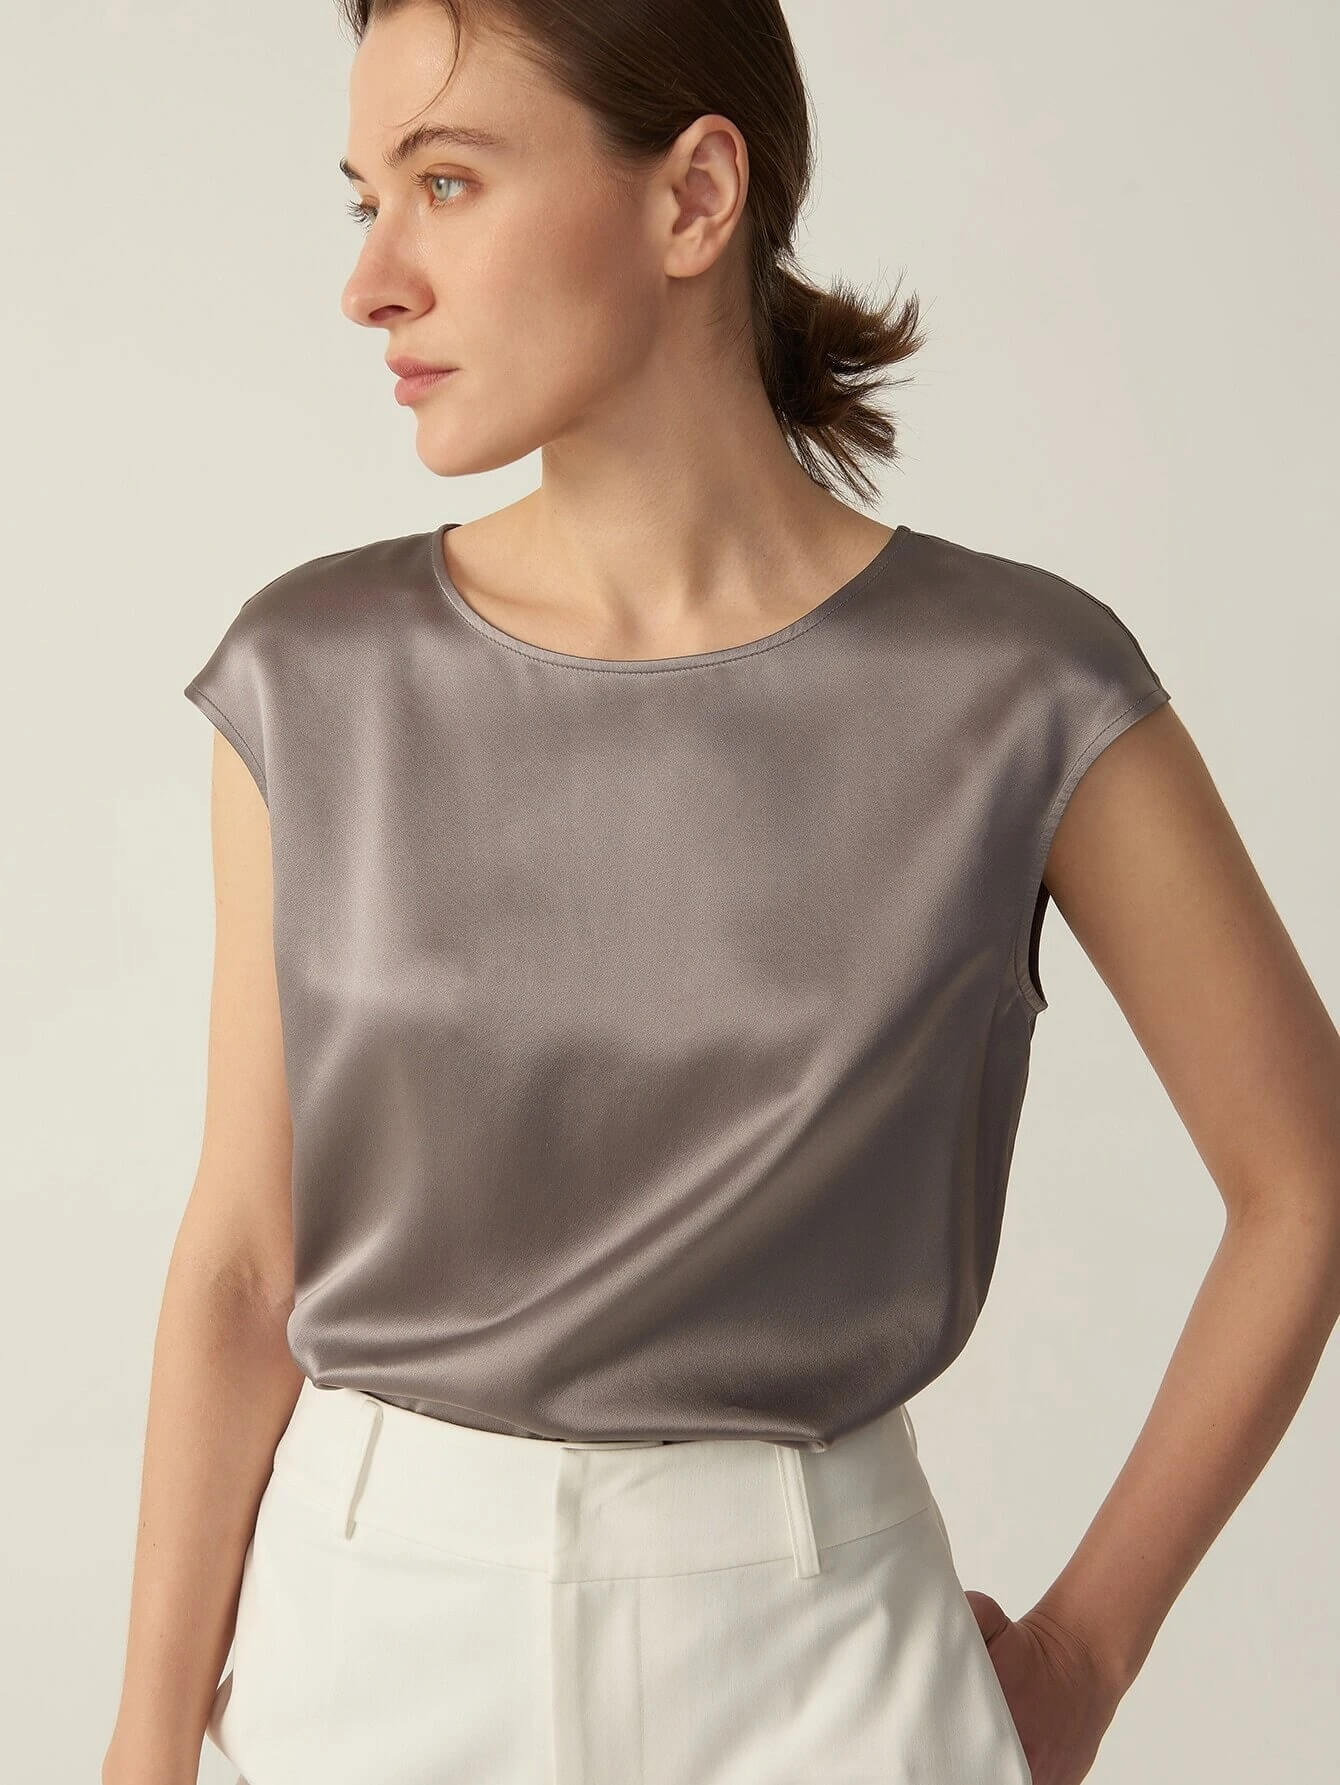 30 Momme Luxurious Elegant Ladies Silk T-Shirts With Cap Sleeves